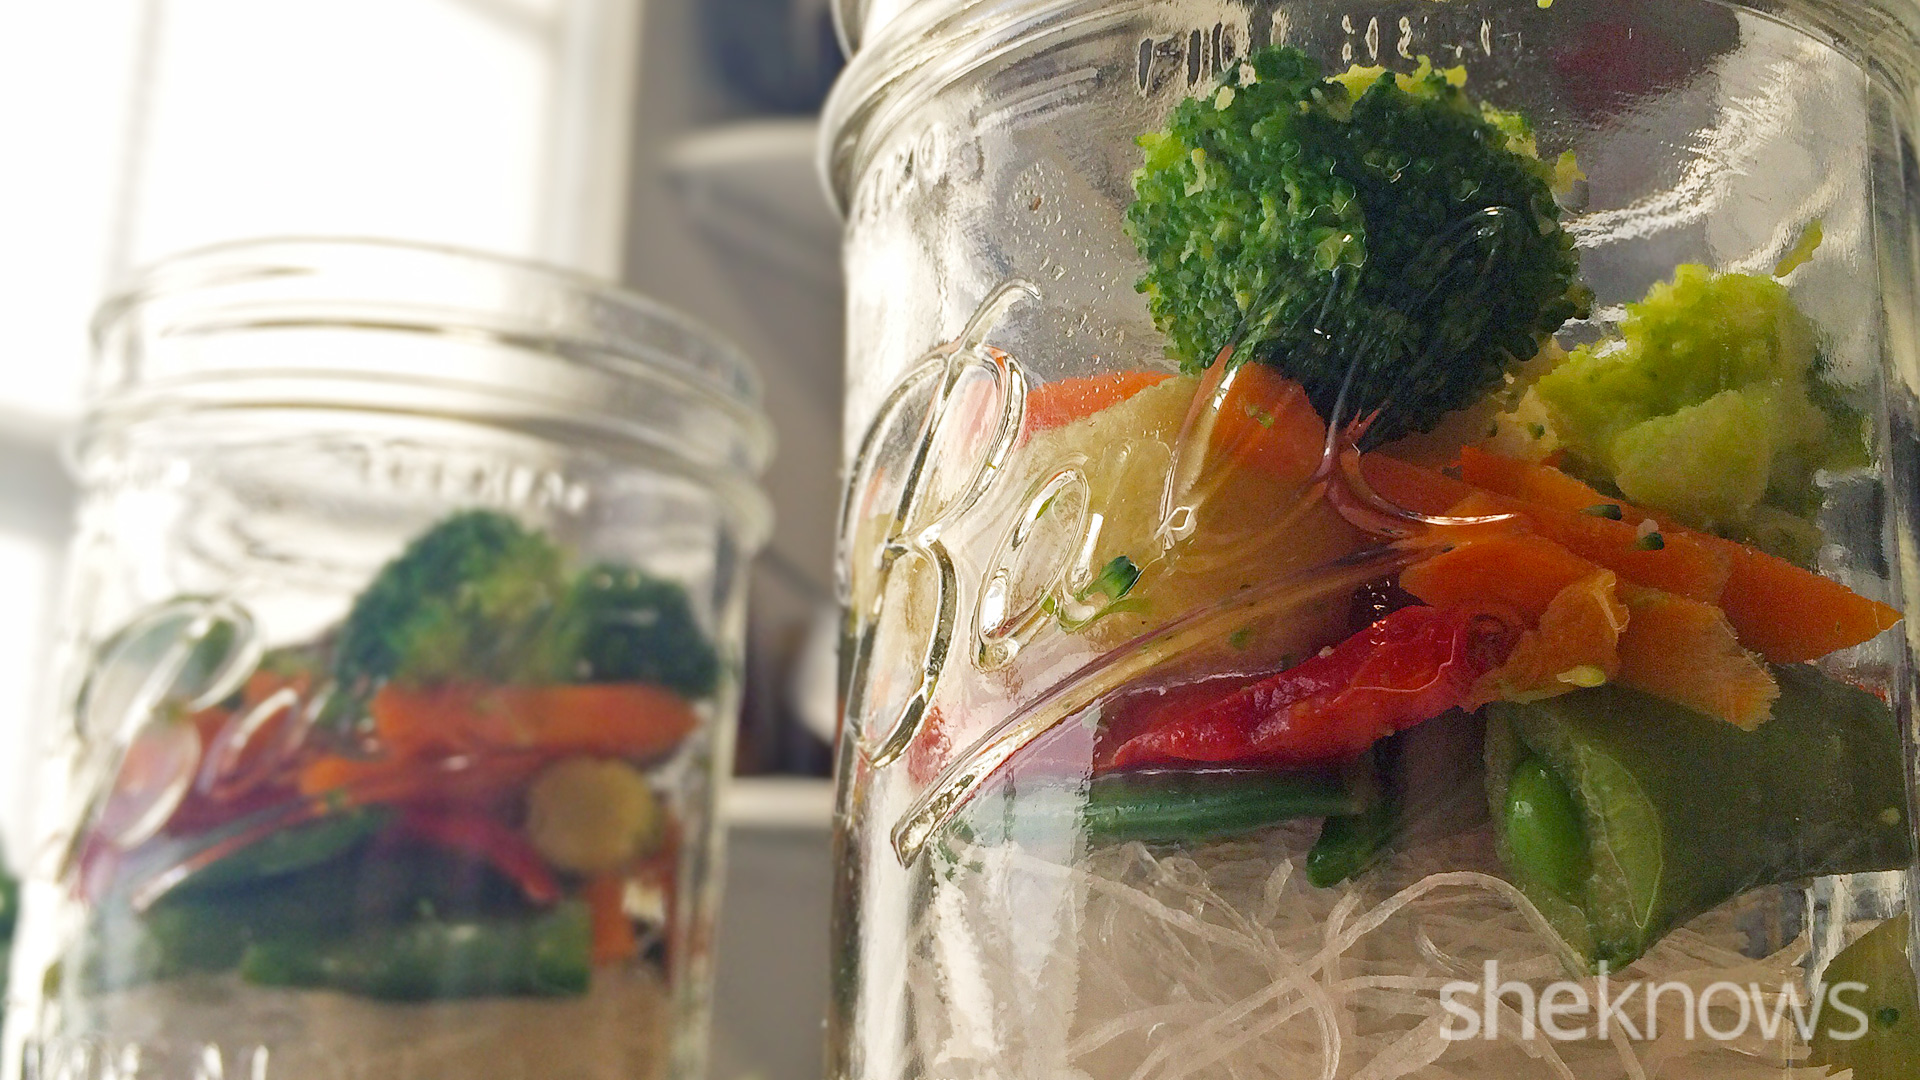 adding mixed vegetables to the jar